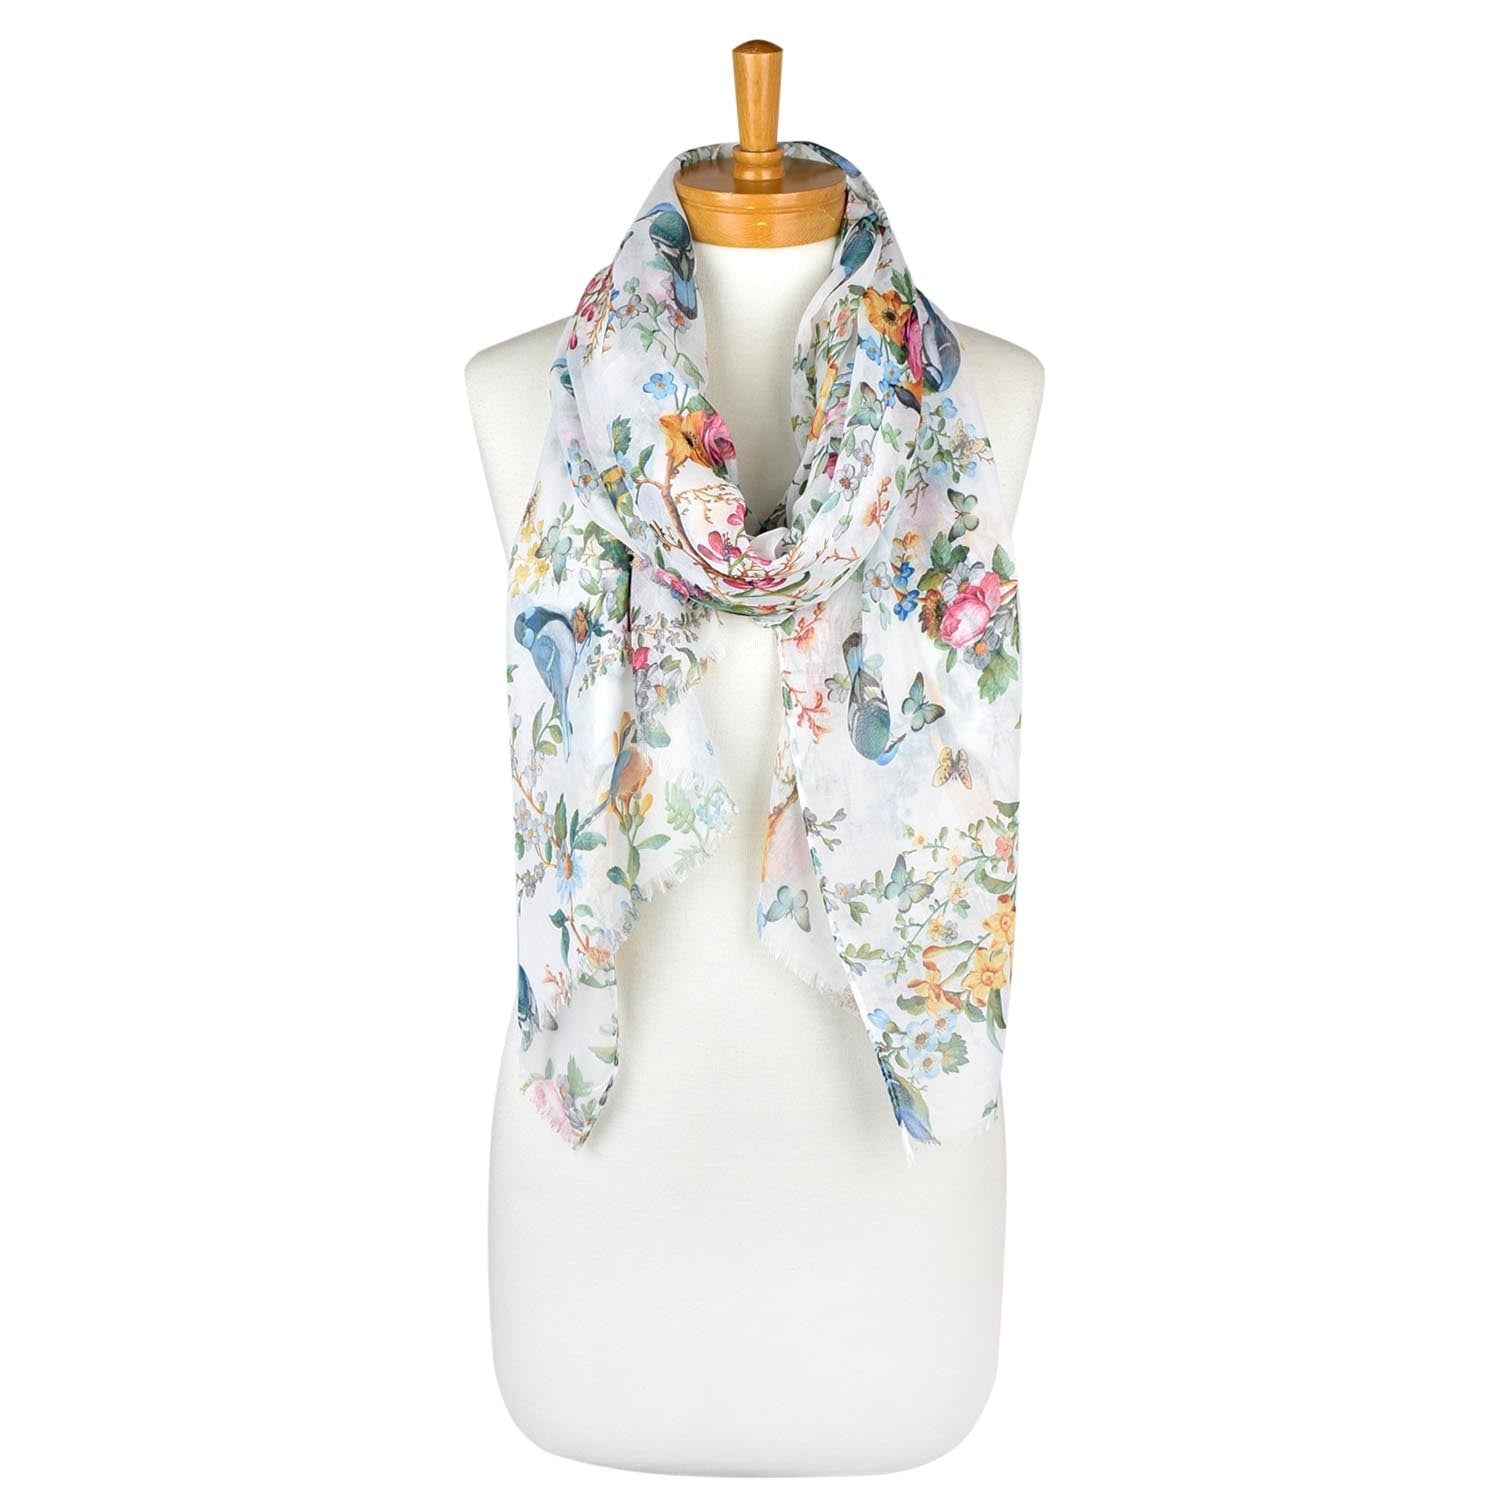 Taylor Hill White Bird garden scarf.